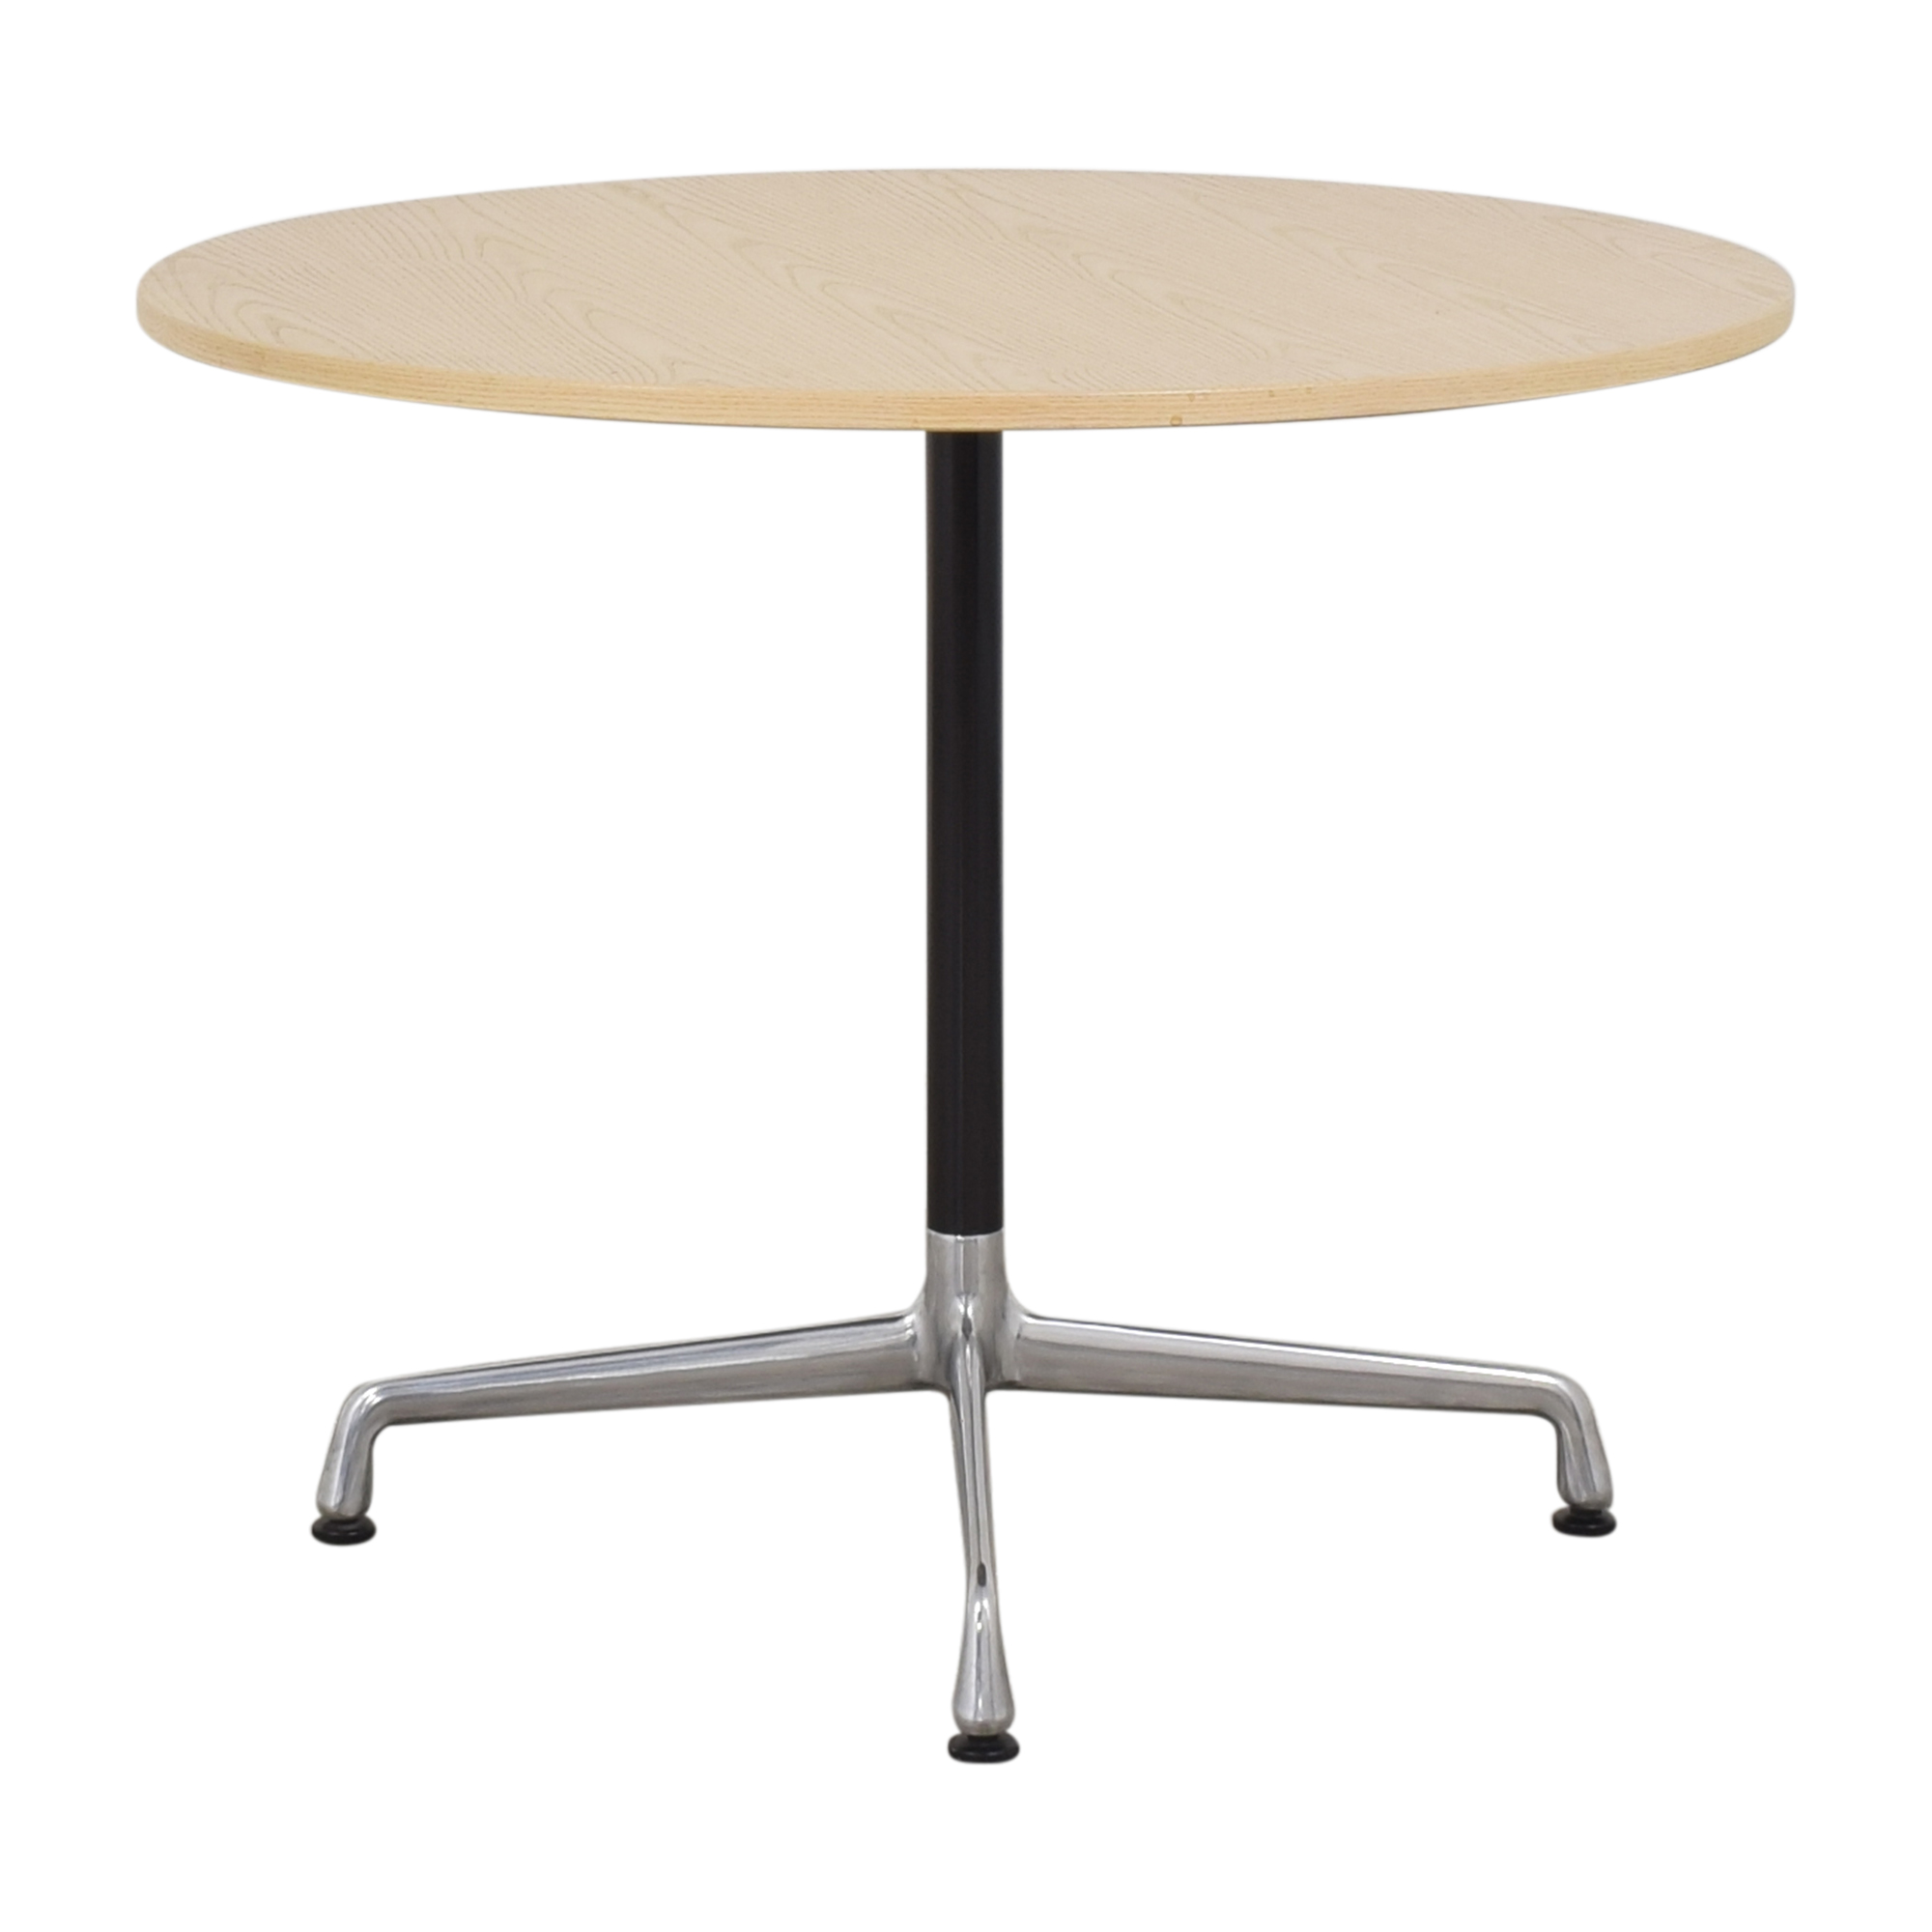 Herman Miller Eames Round Dining Table / Tables